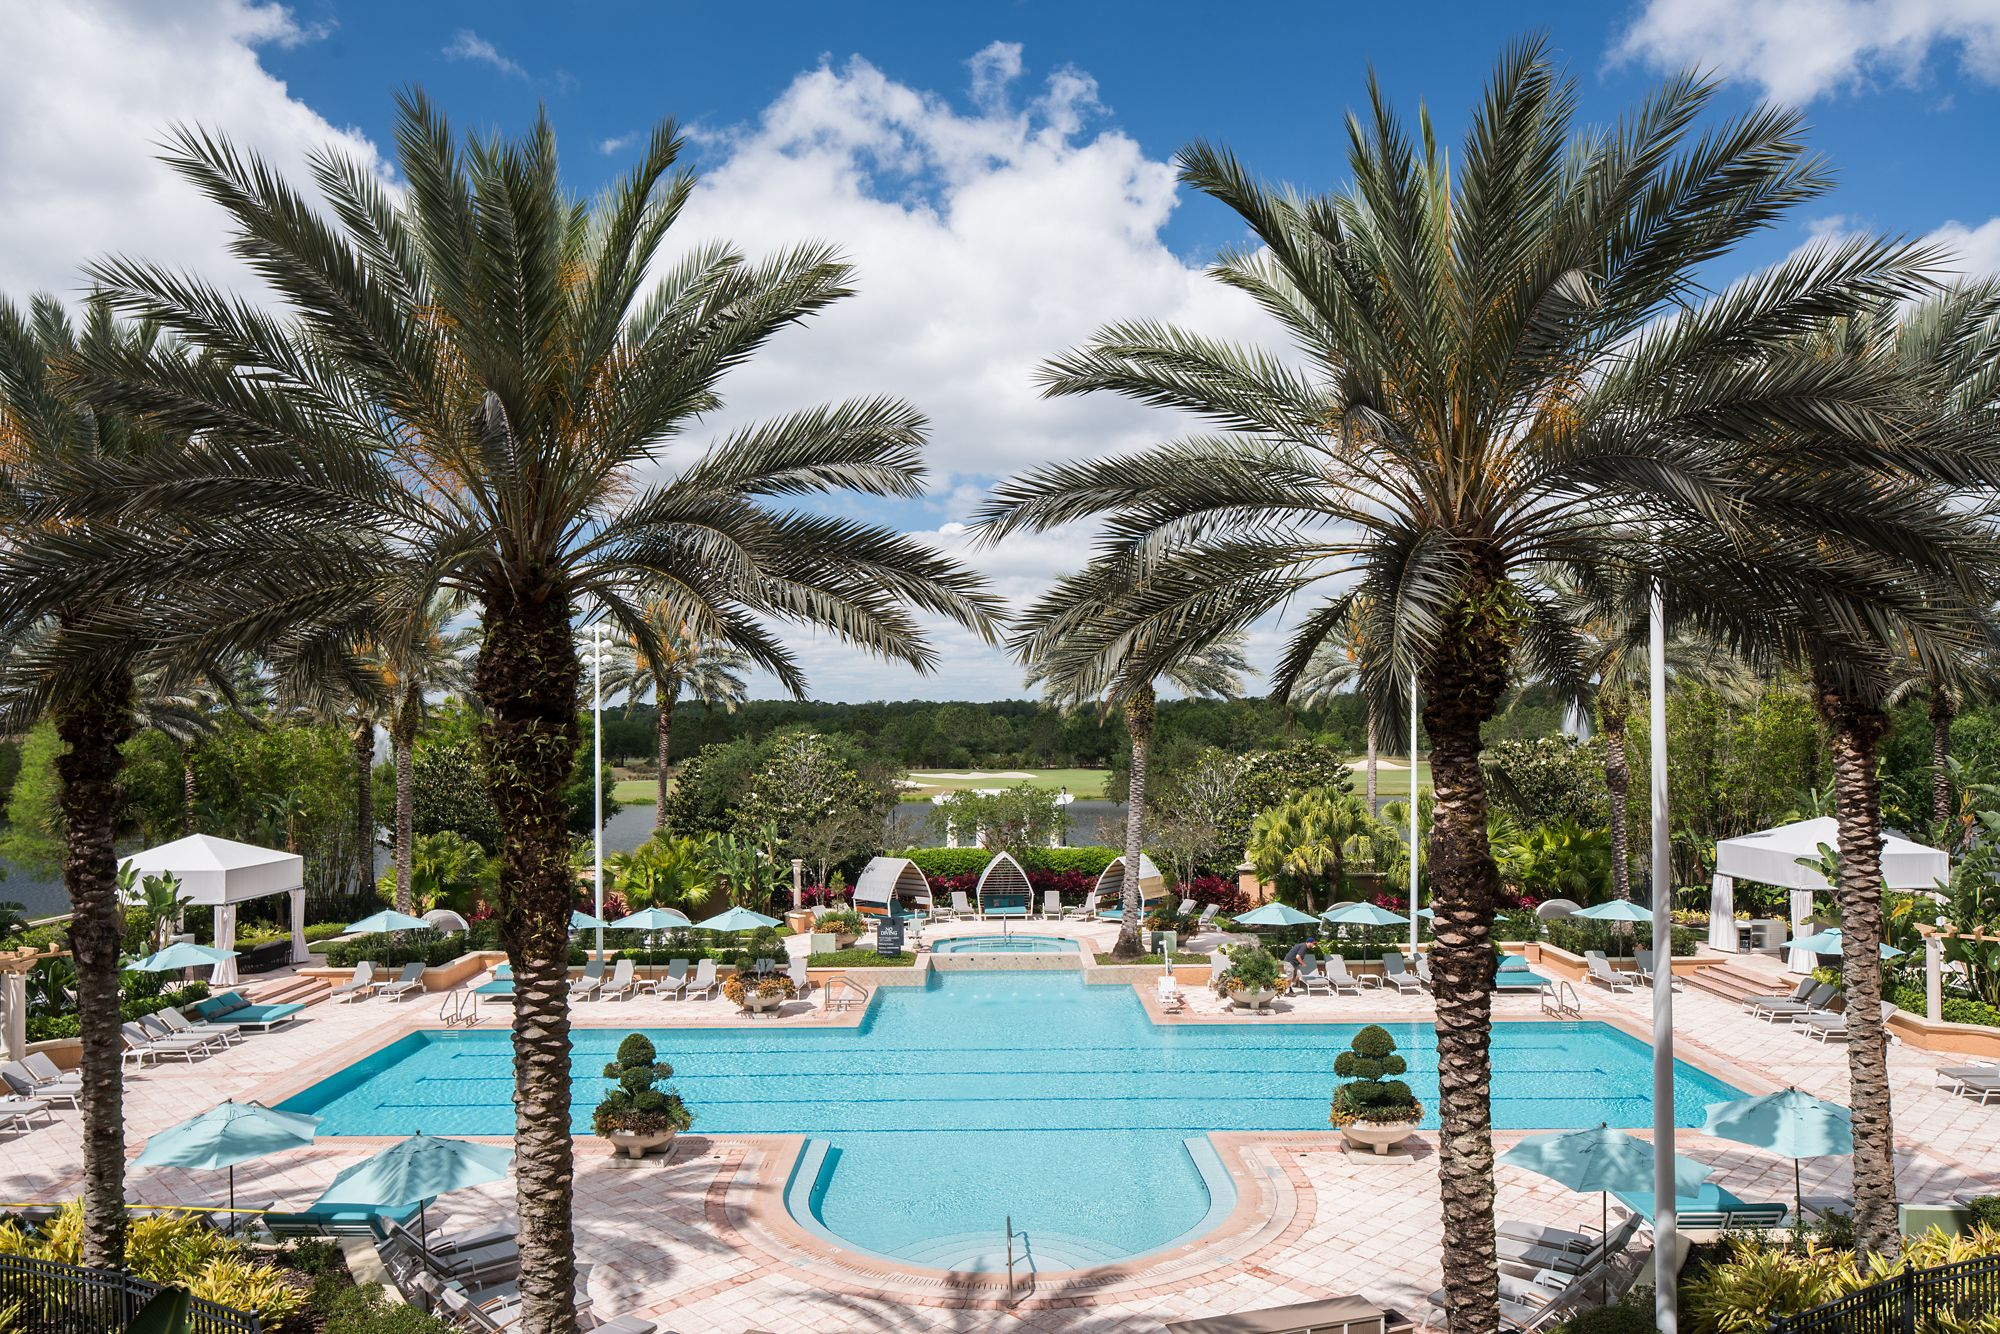 The Ritz-Carlton Orlando, Grande Lakes unveils renovations